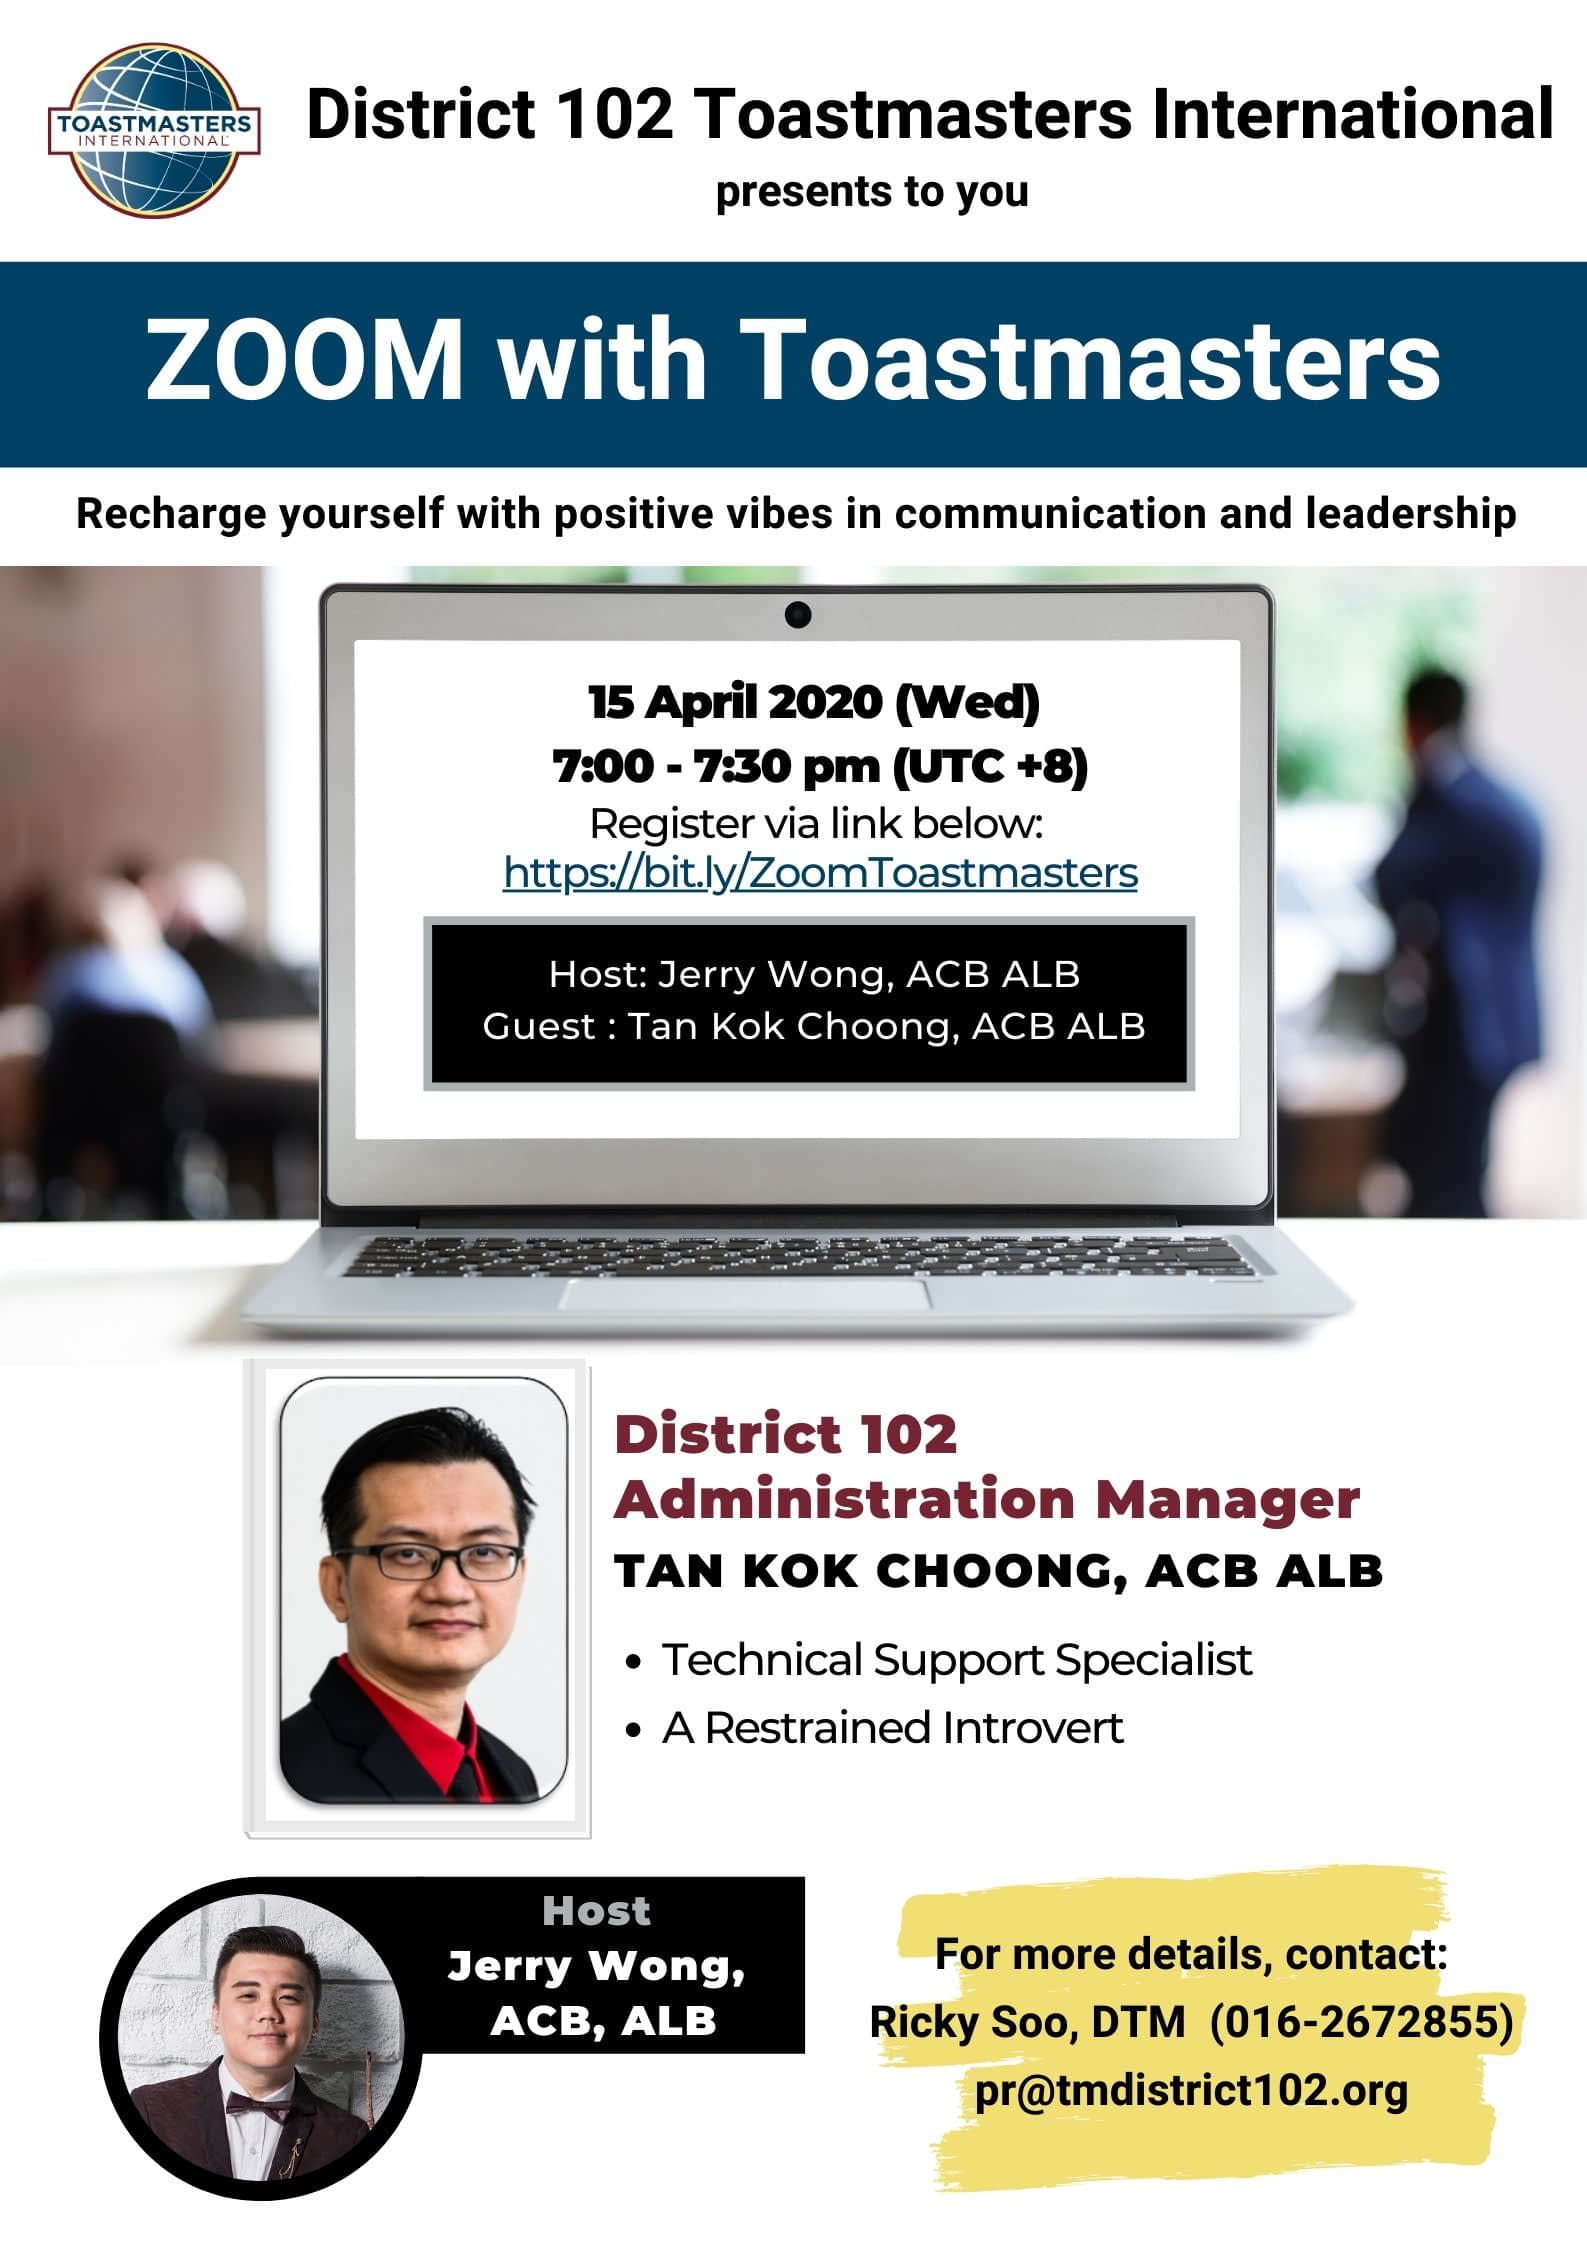 Zoom With Toastmasters Tan Kok Choong Acb Alb Toastmasters